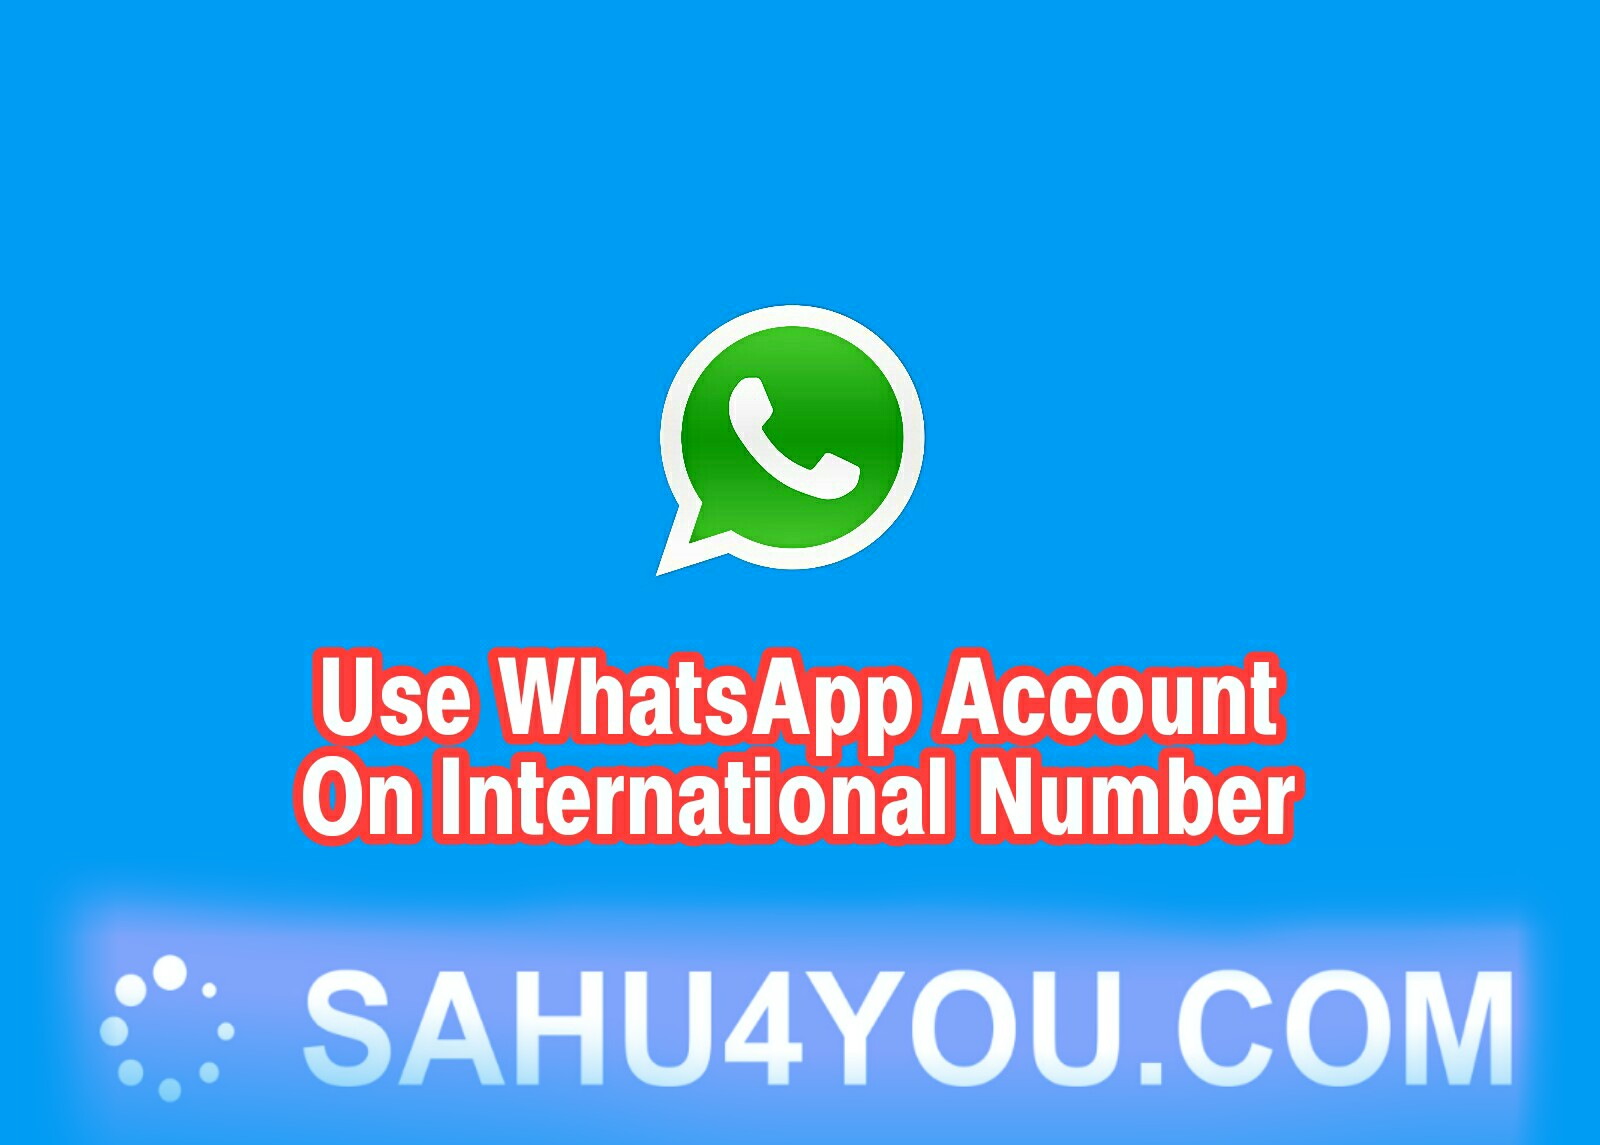 Create WhatsApp Account With International Number (100% Working Method)